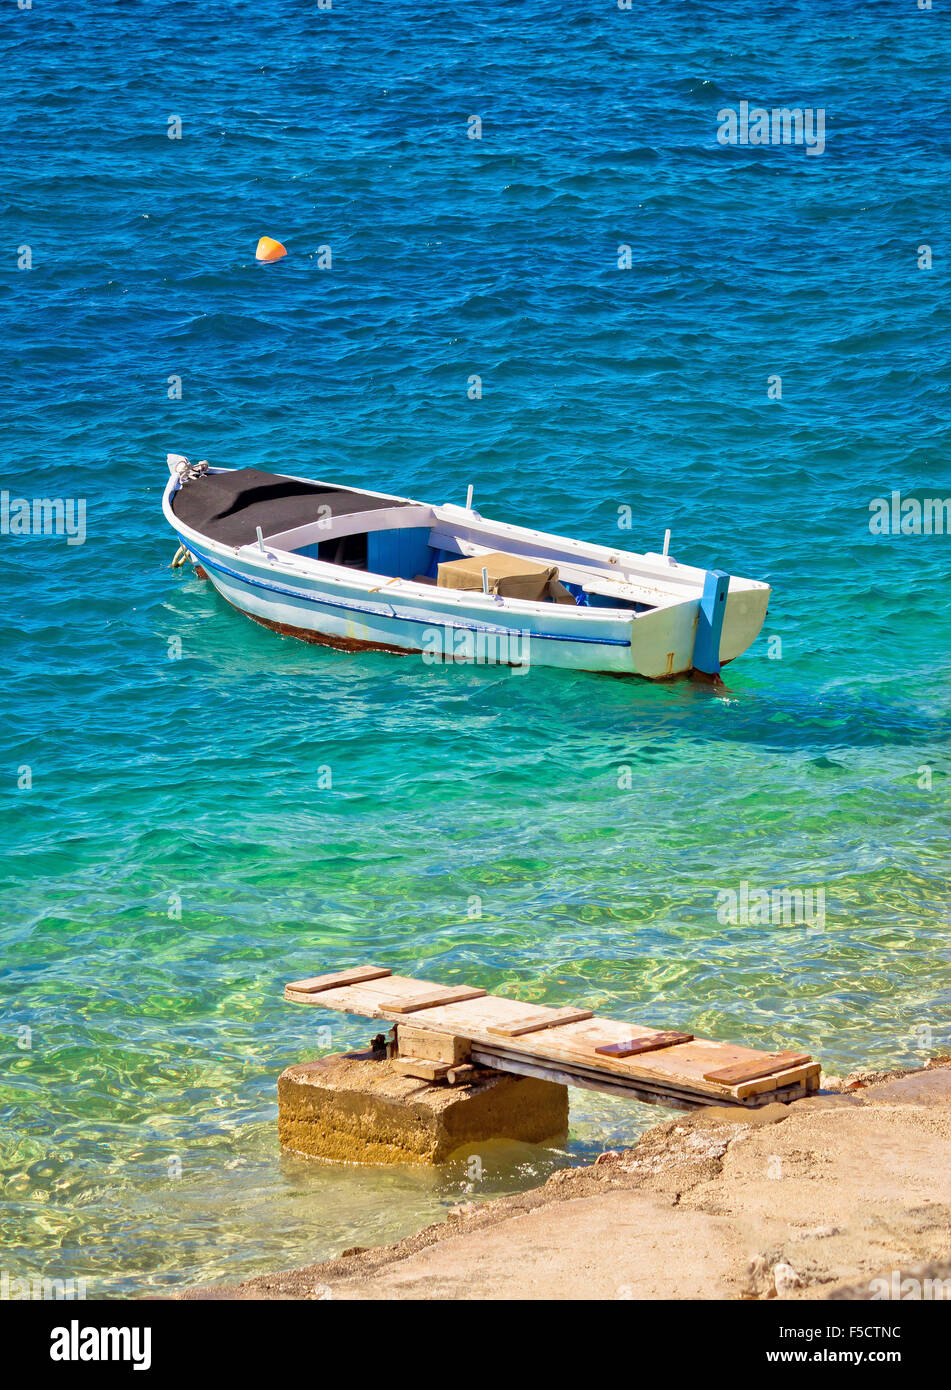 Old wooden fishermen boat on turquoise beach, Mediterranean sea - Stock Image